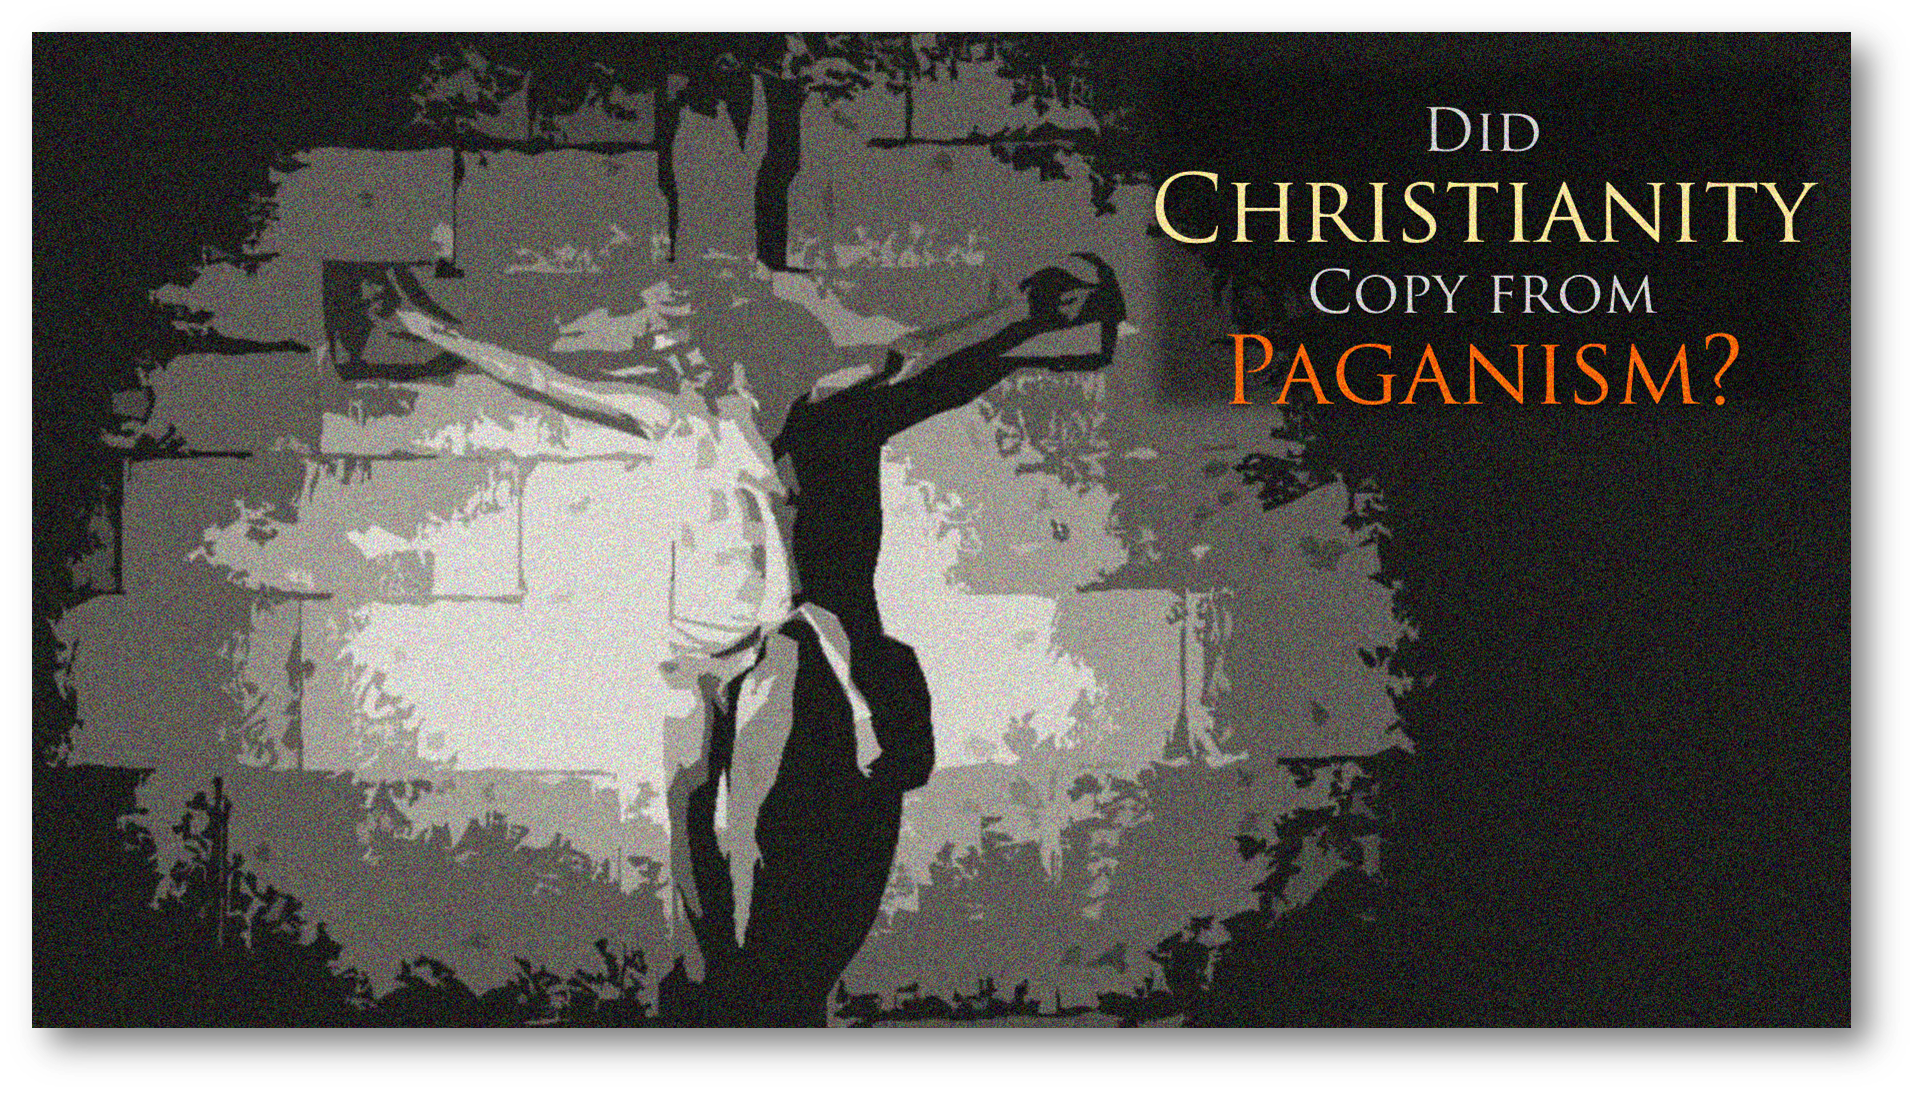 pagan essays Essays the impact of pagan artifacts in christian art tangible reminders of the demise of a pagan civilization that had once straddled much of the globe.